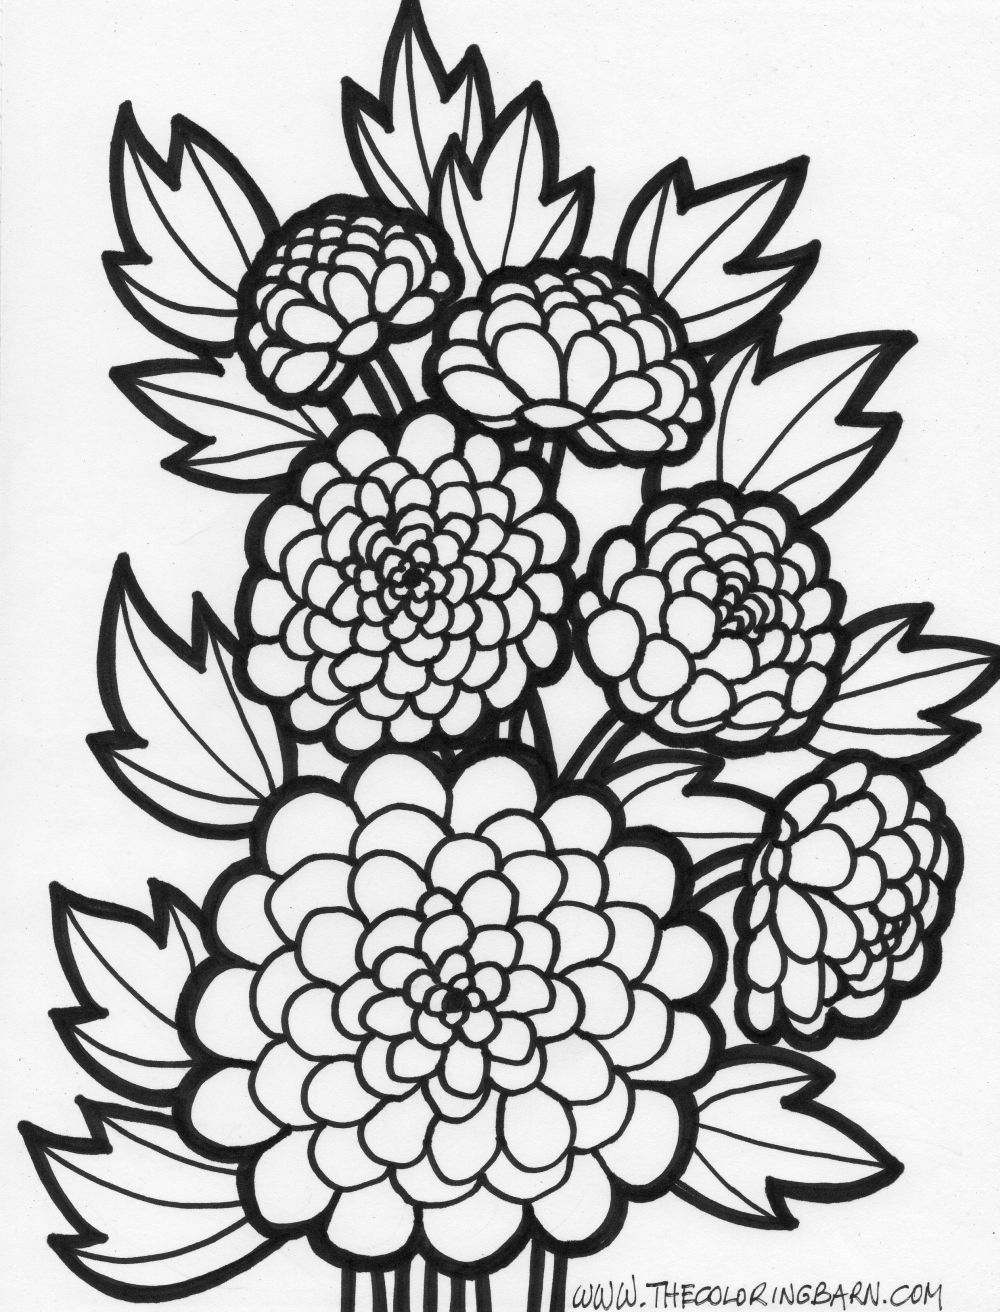 Childrens online colouring book - Colouring Printable Flower Coloring Pages For Adults In Exterior Animal Coloring